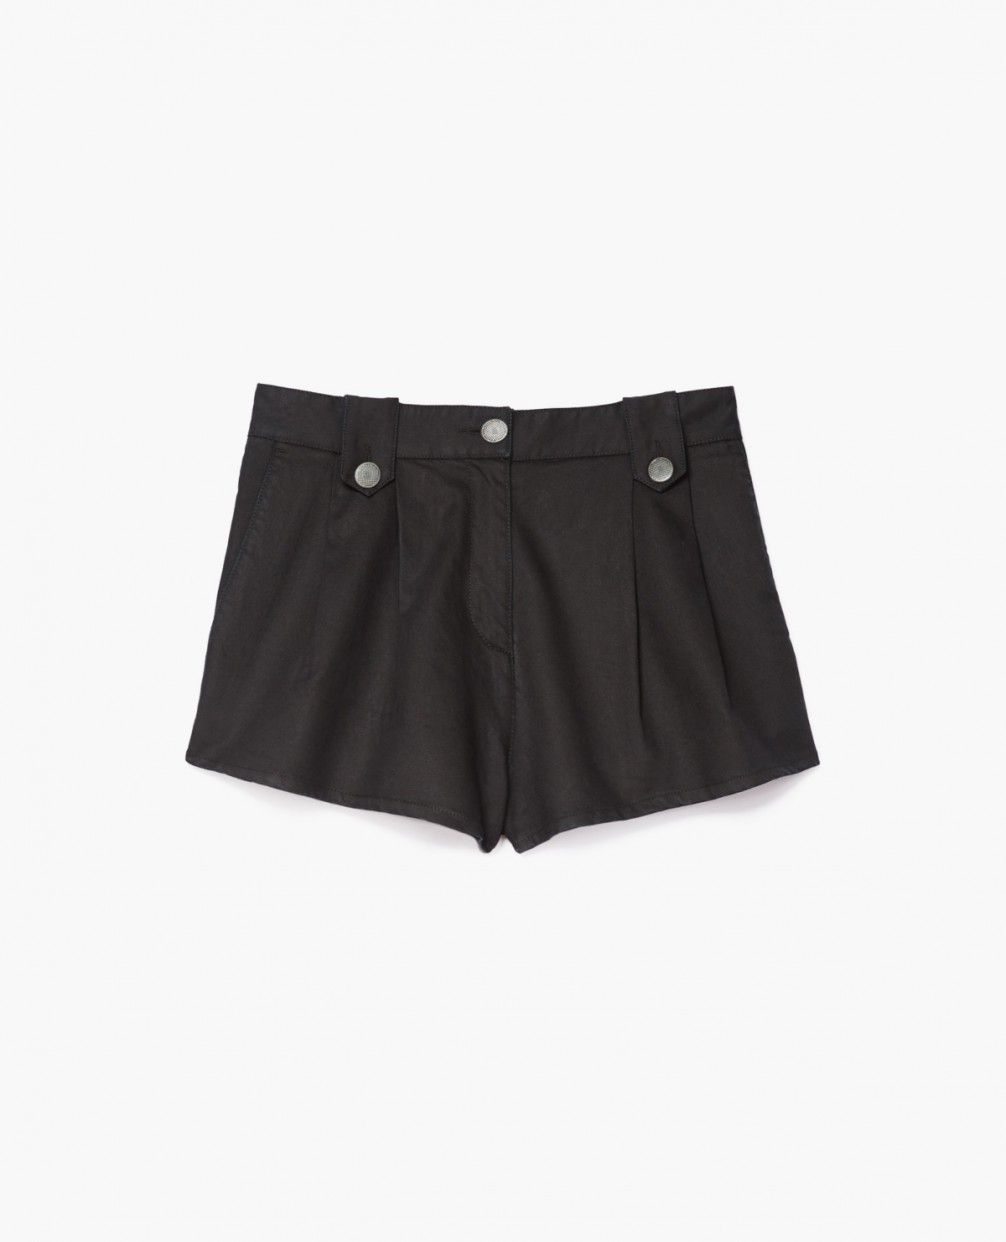 93035eae4a Flowing denim shorts - Skirts & Shorts - New Collection Women - The Kooples